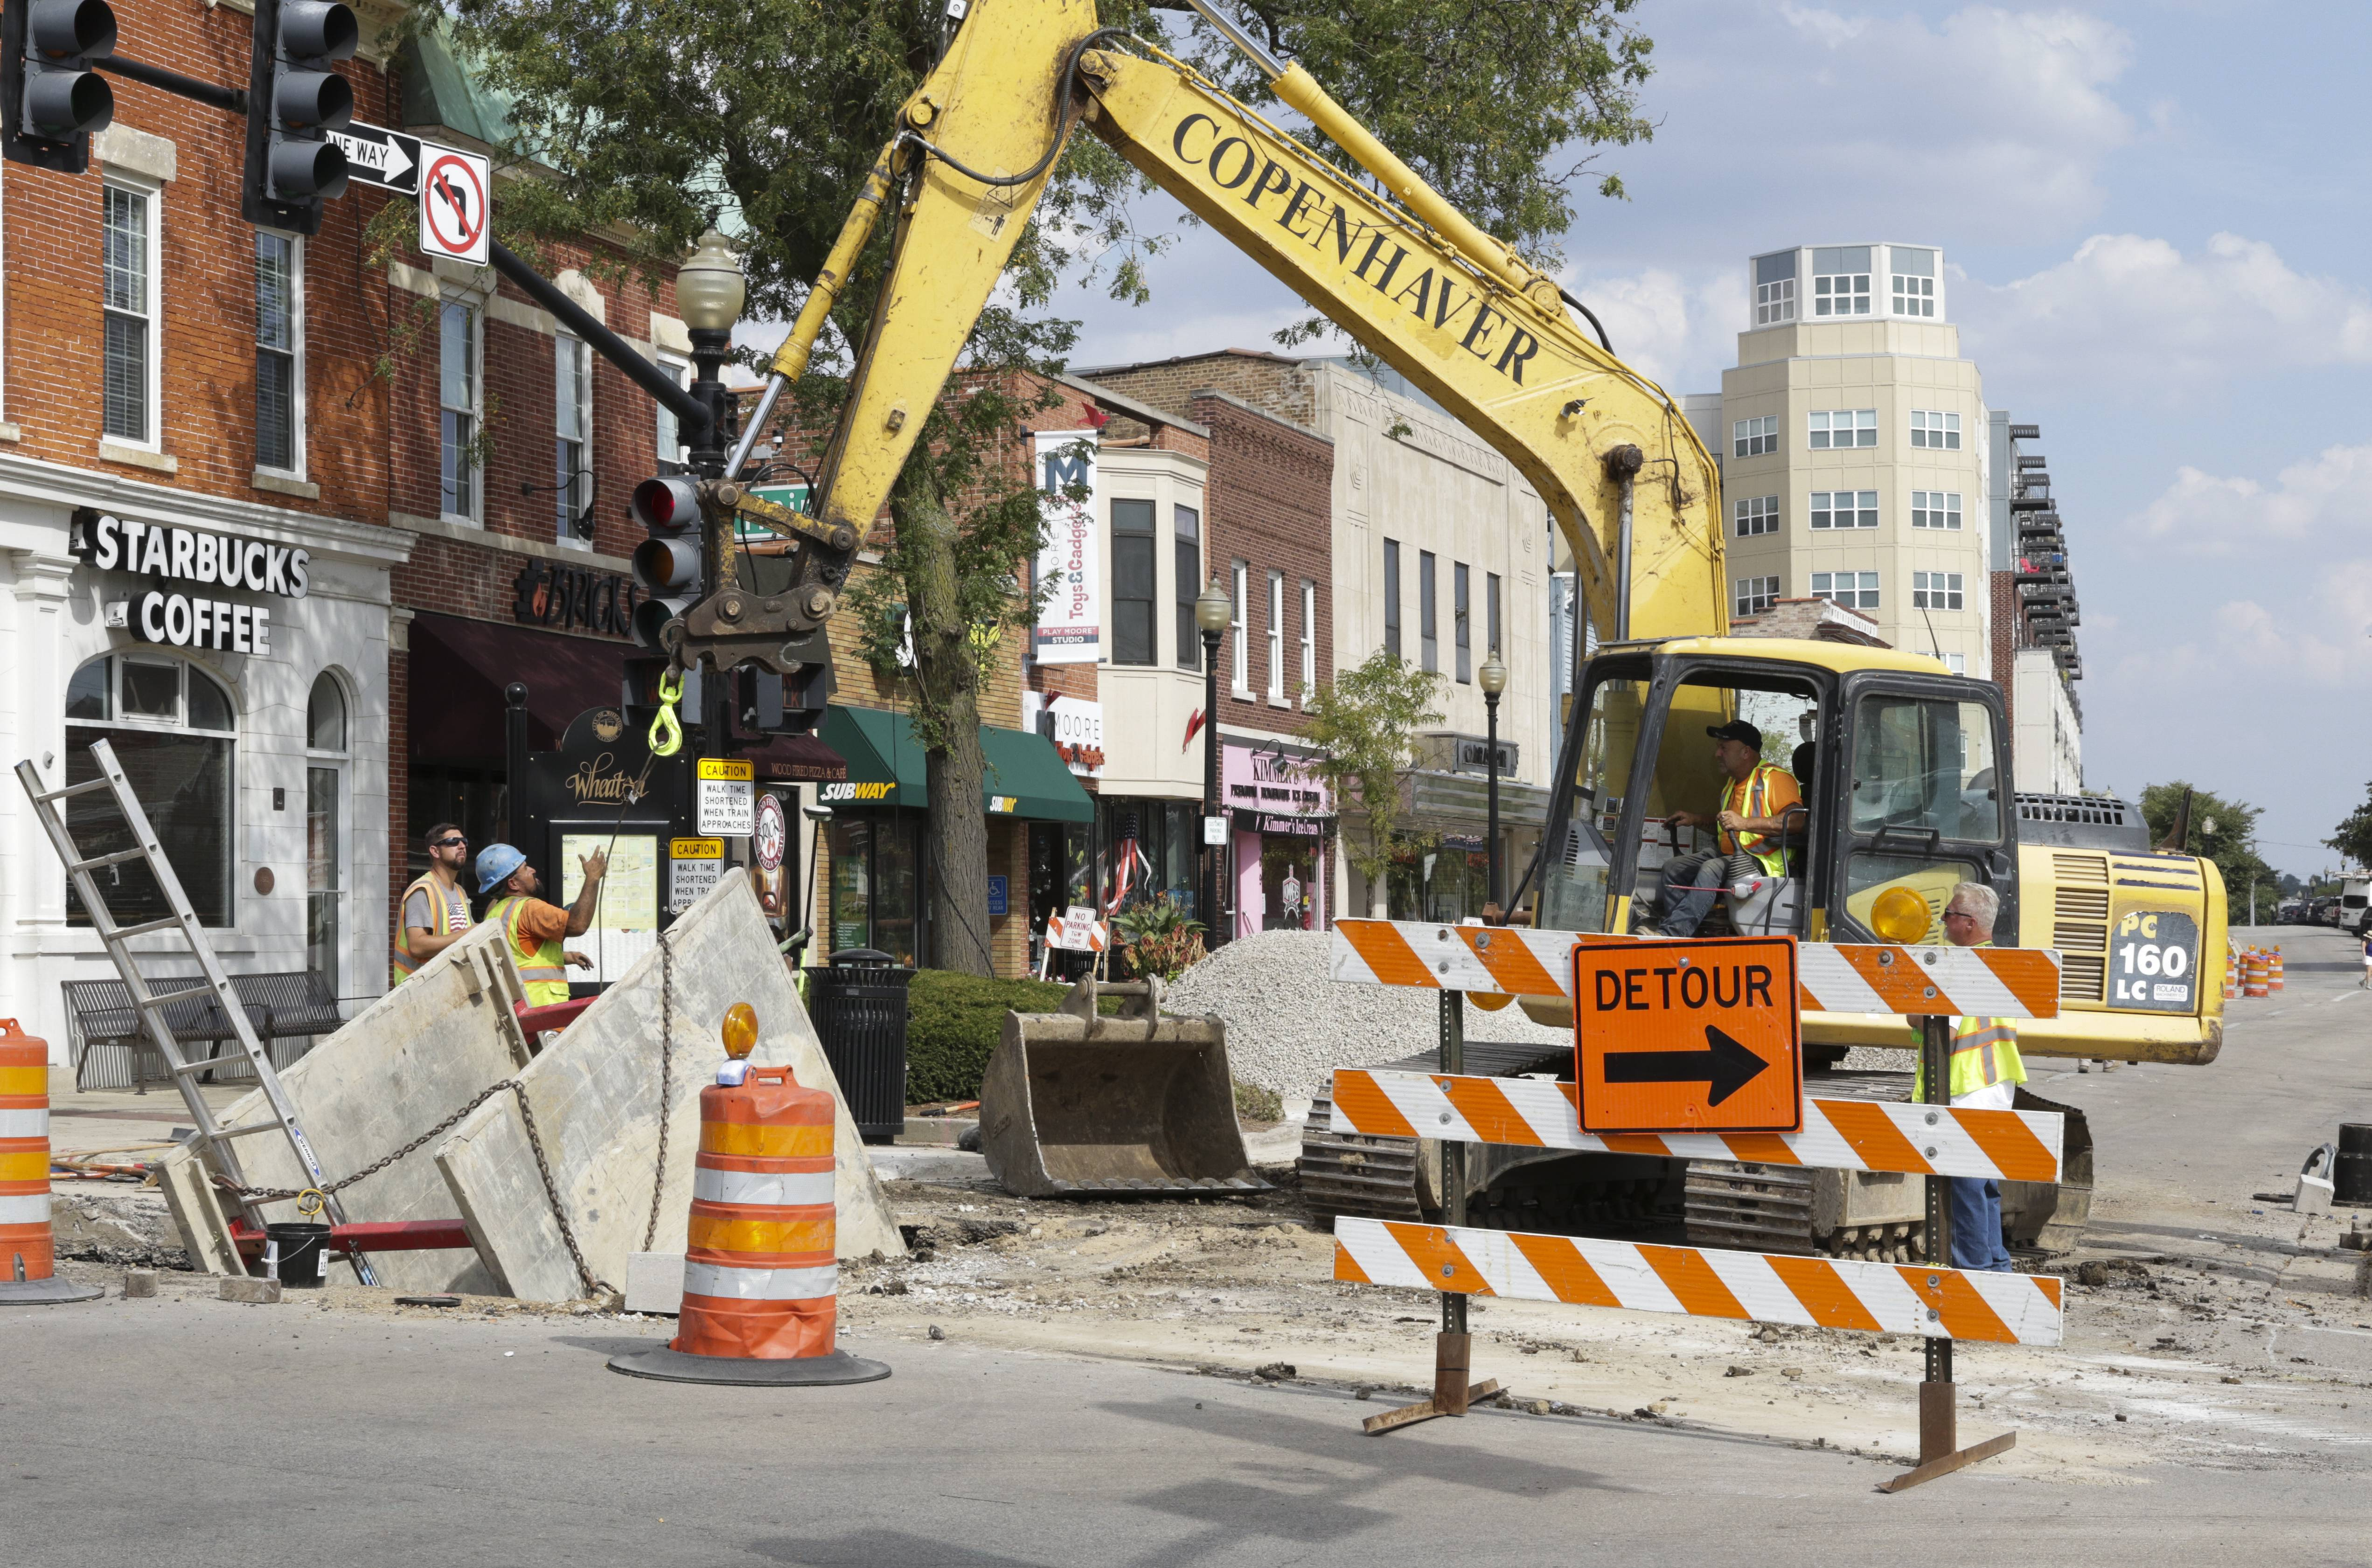 Crews are working on an infrastructure project near Front and Main streets in downtown Wheaton as part of the first phase of improvements to the core business district.